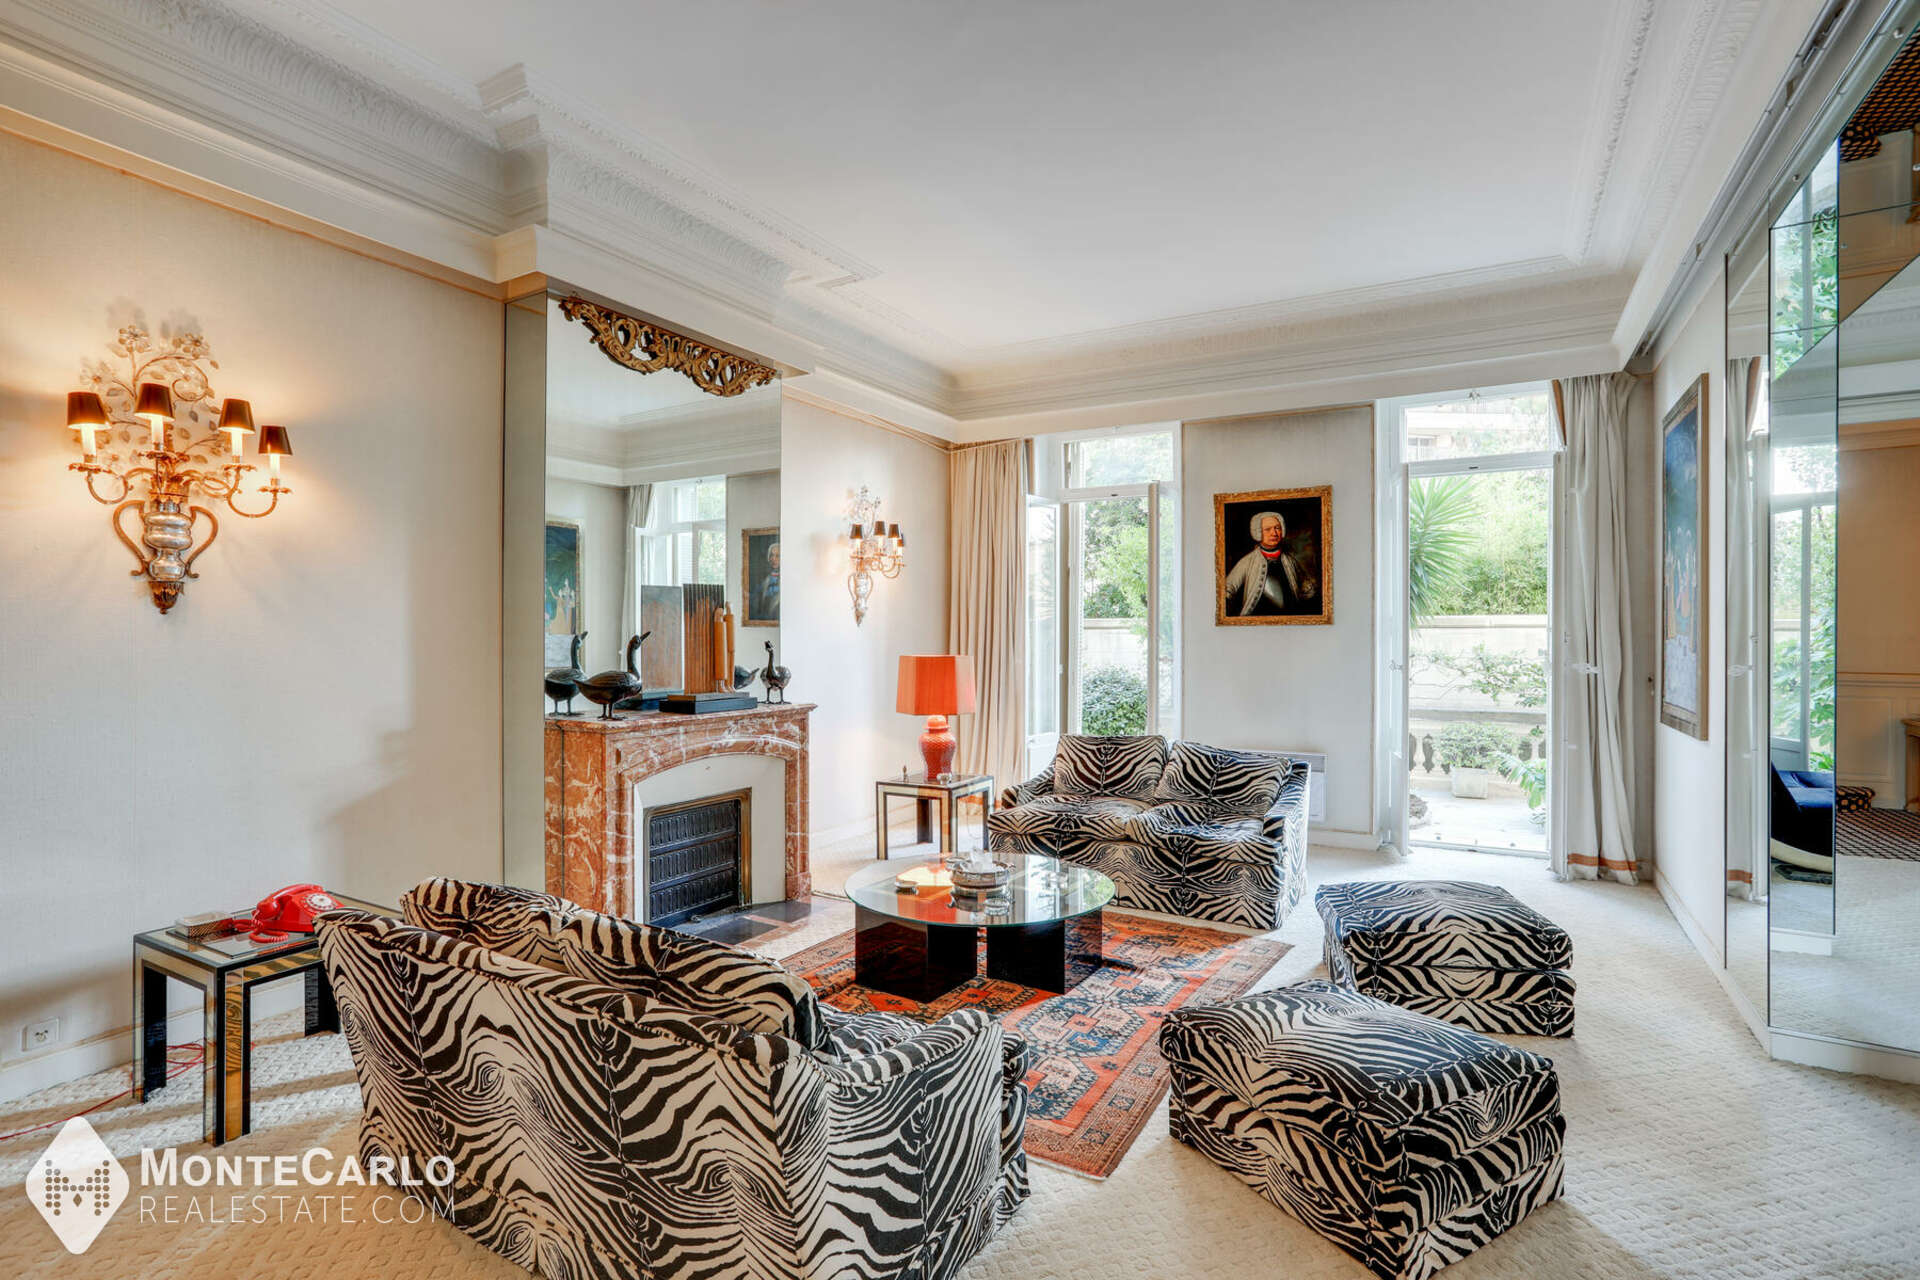 For sale Monaco - Apartment / 5 rooms | Monte-Carlo Real Estate [C-Or-Bourgeois/MC2-555]